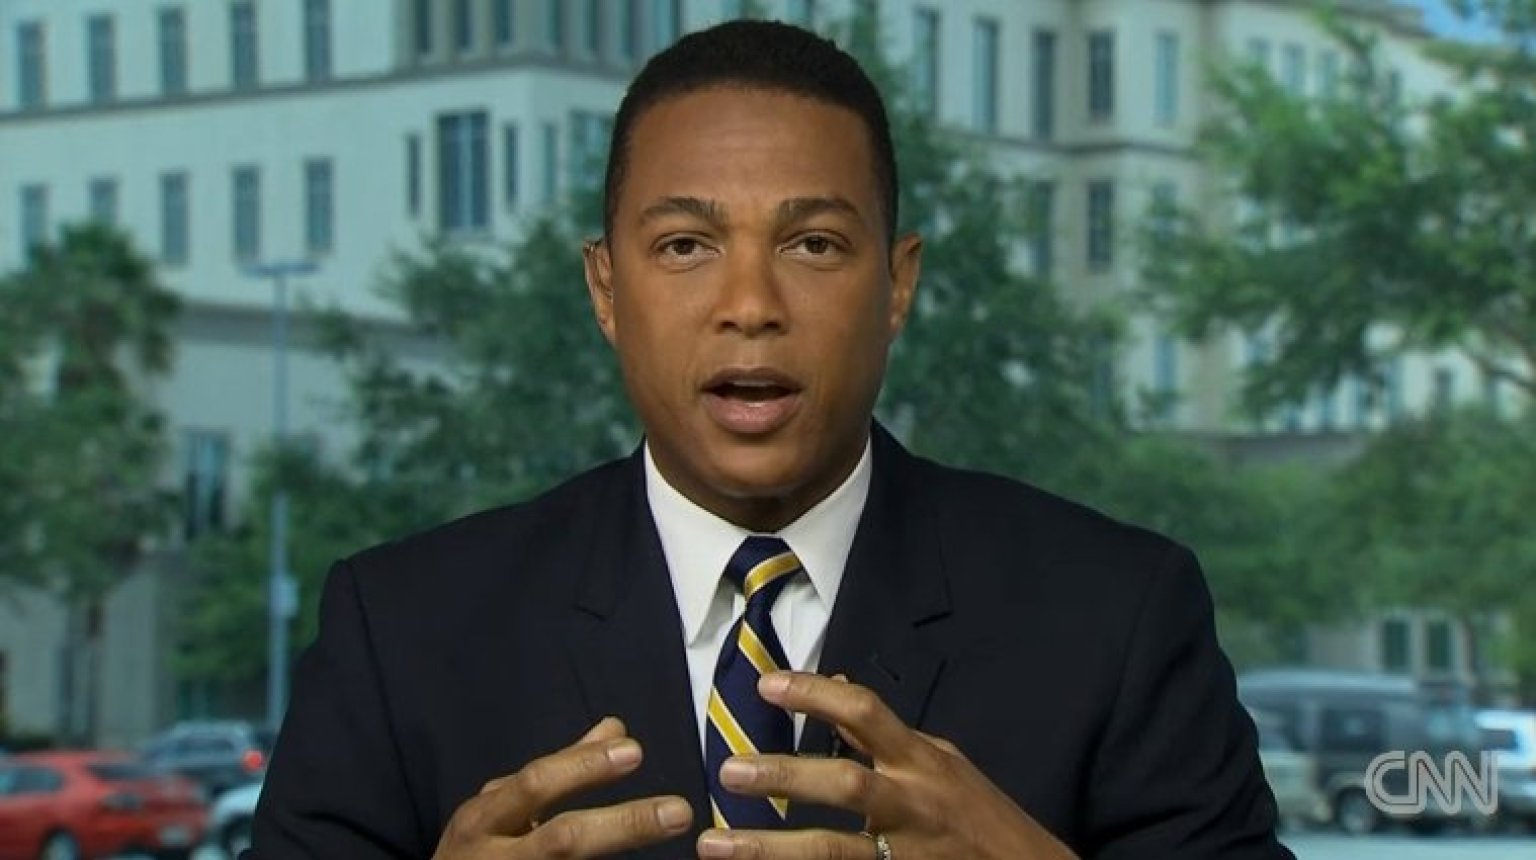 Don Lemon Just Wants To Enjoy His New Haircut In Peace